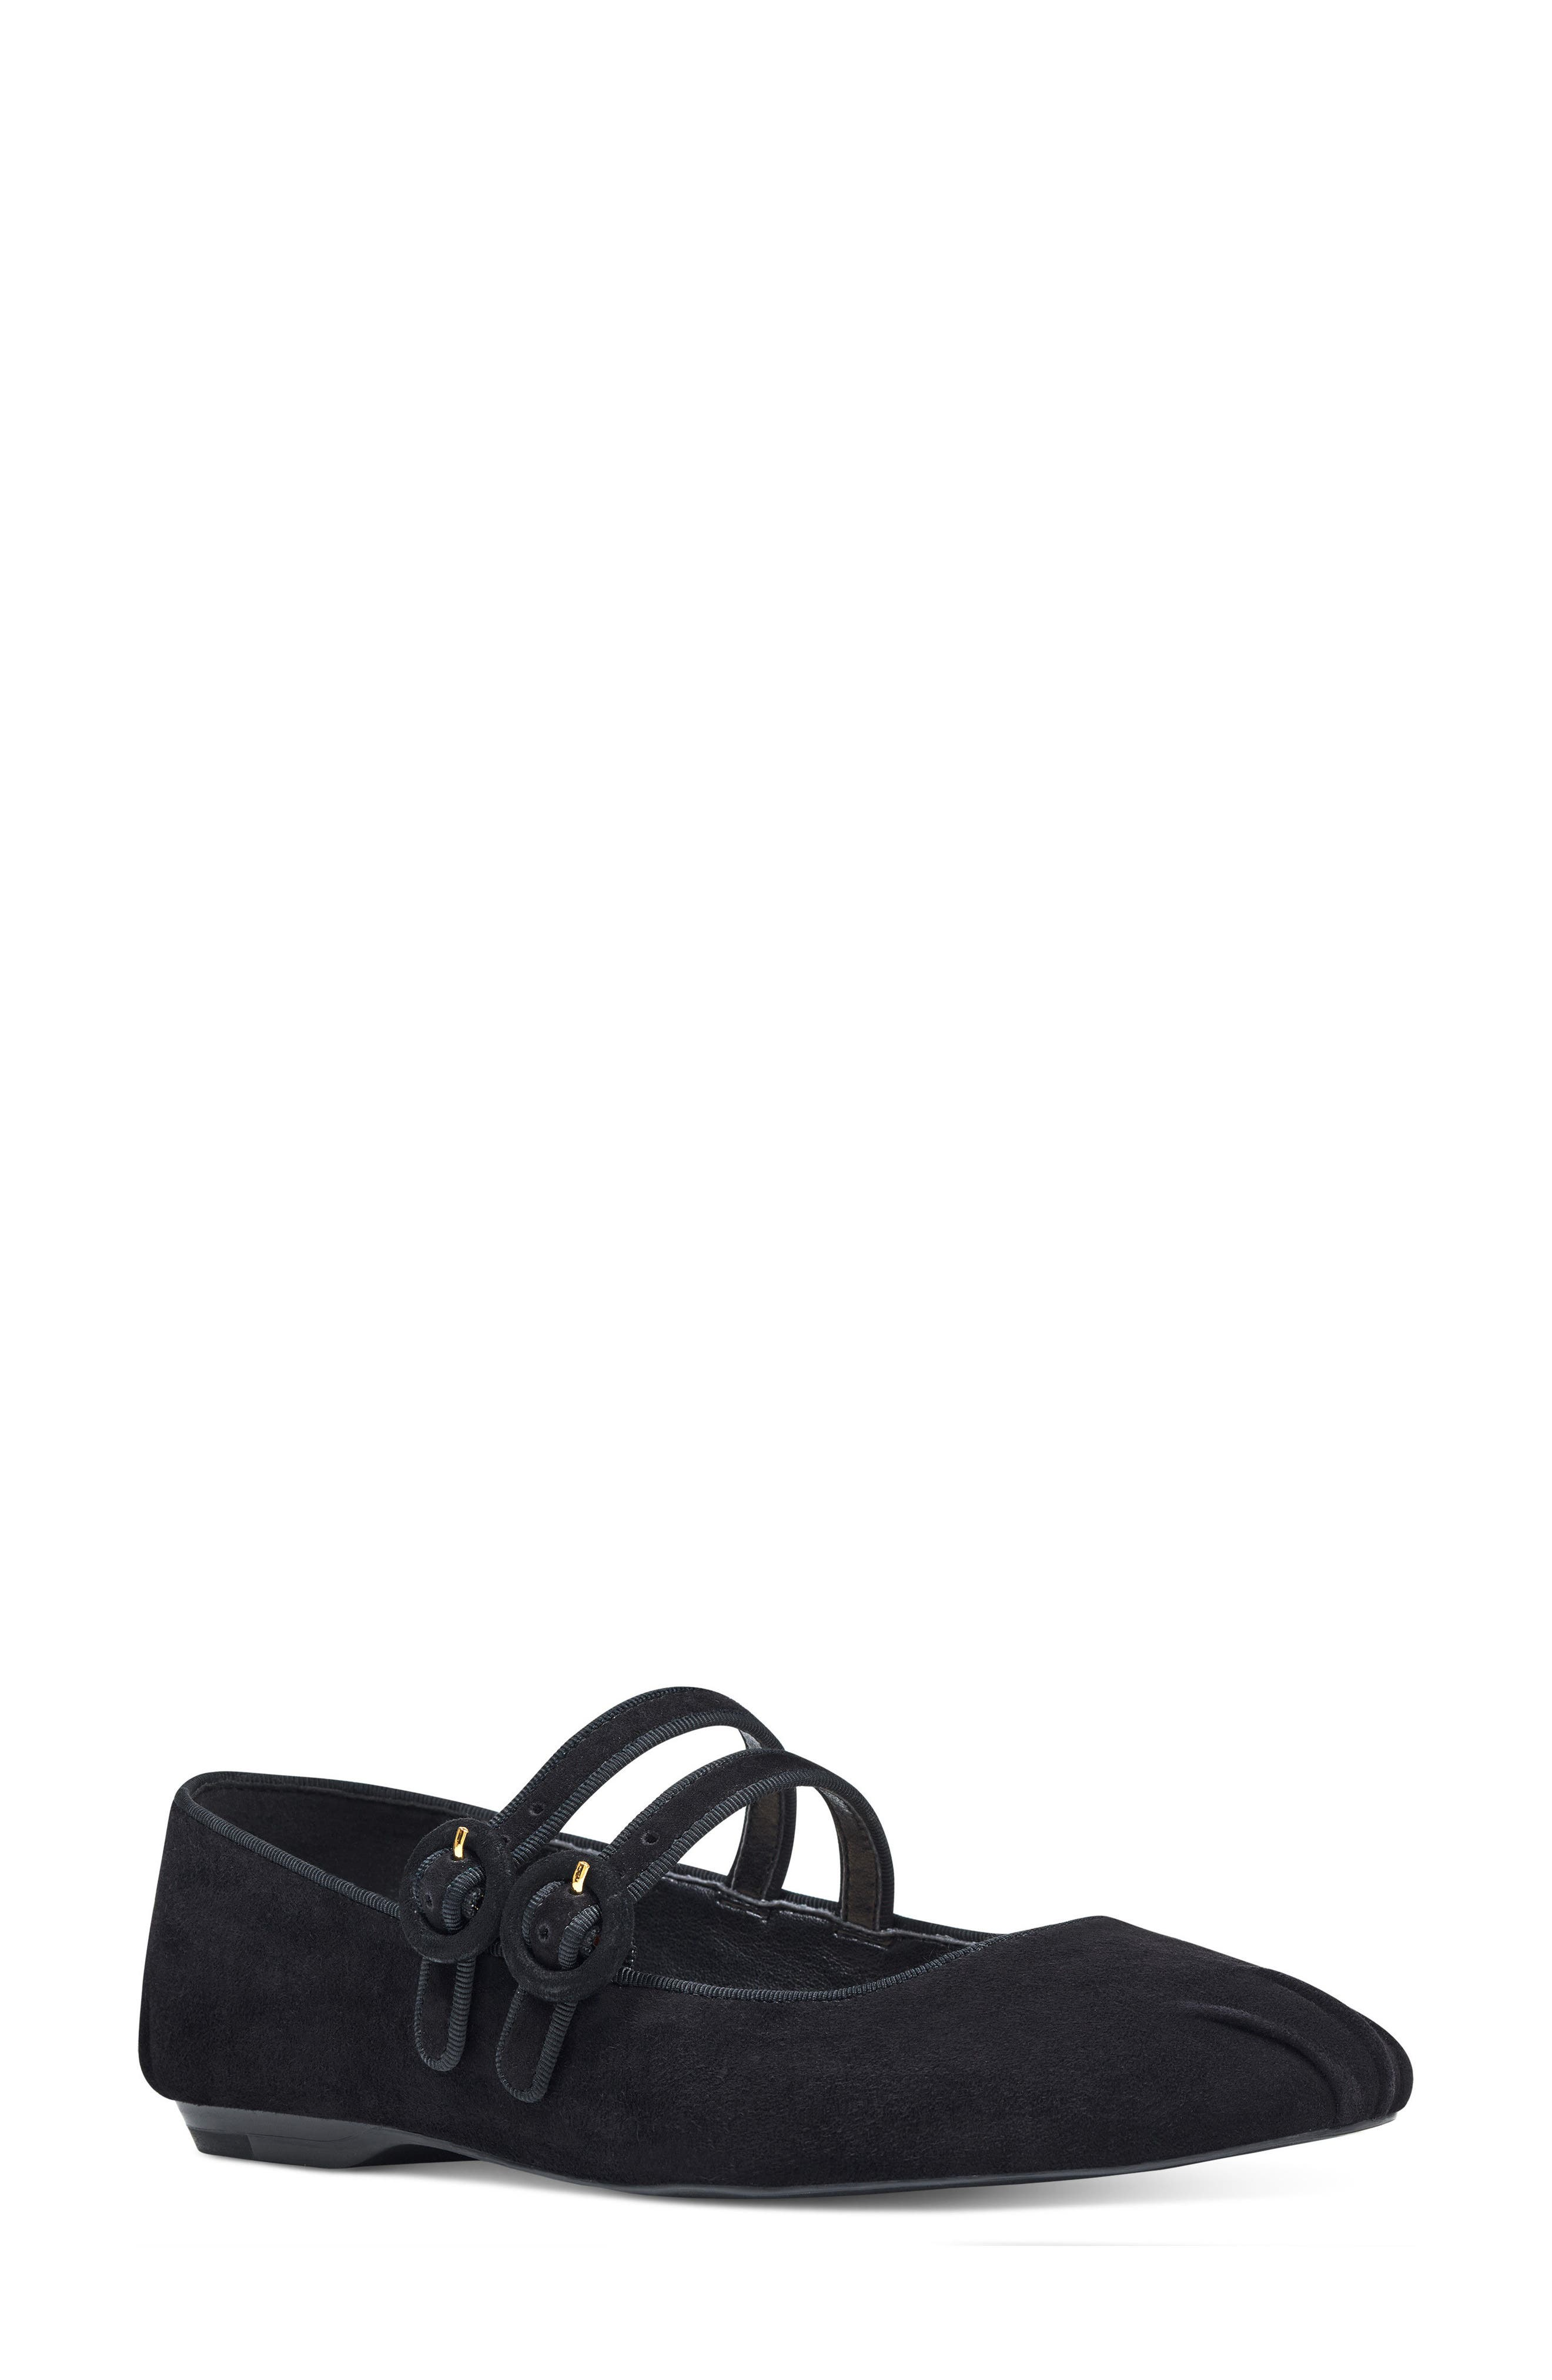 Xrye Flat,                         Main,                         color, Black Suede